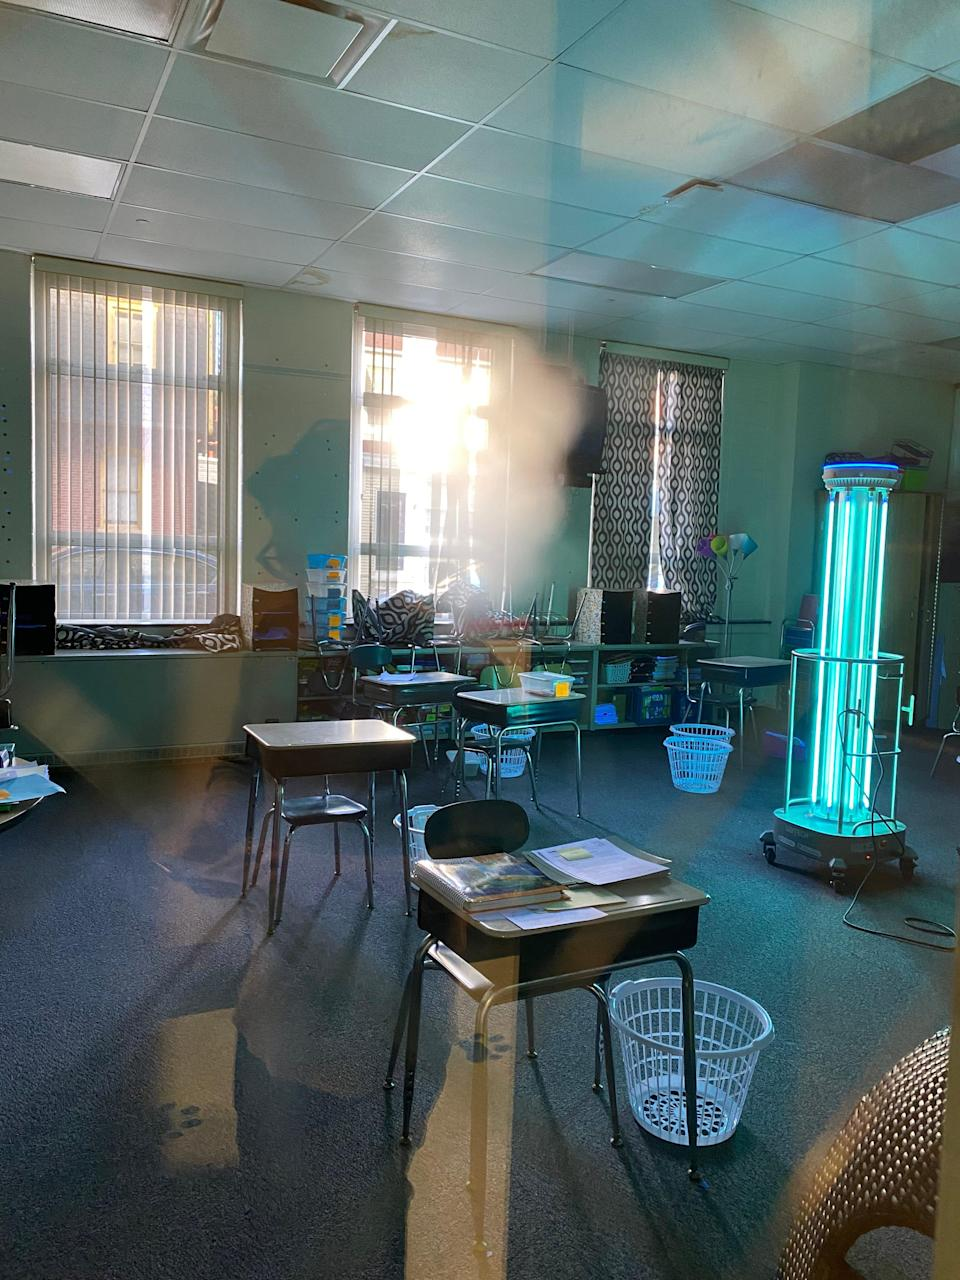 An ADIBOT sanitizes a Christina classroom, using UV-C light to disinfect surfaces and the air.